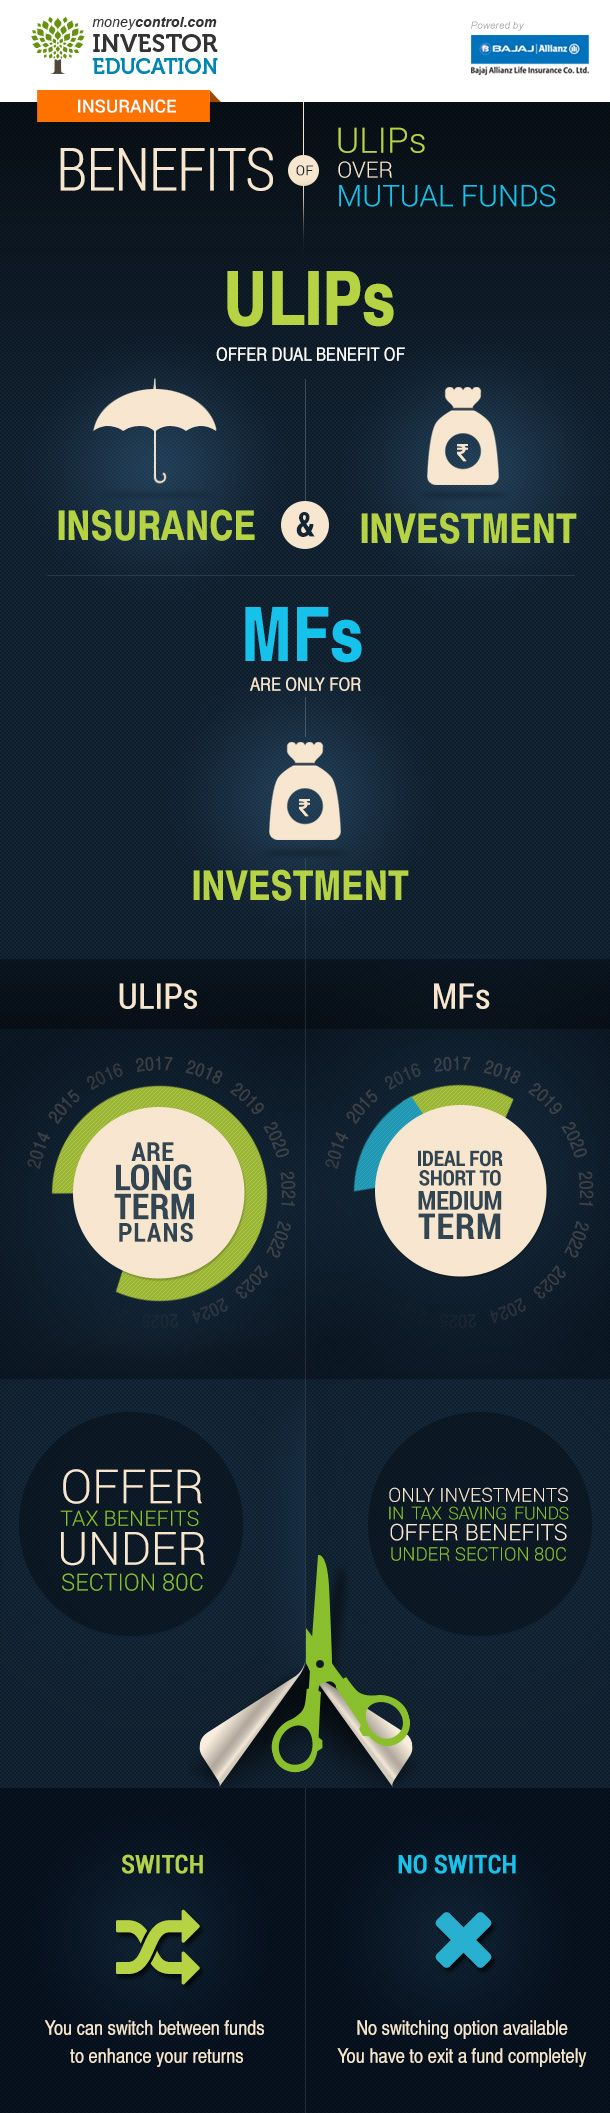 Benefits of ULIPs over other investment products